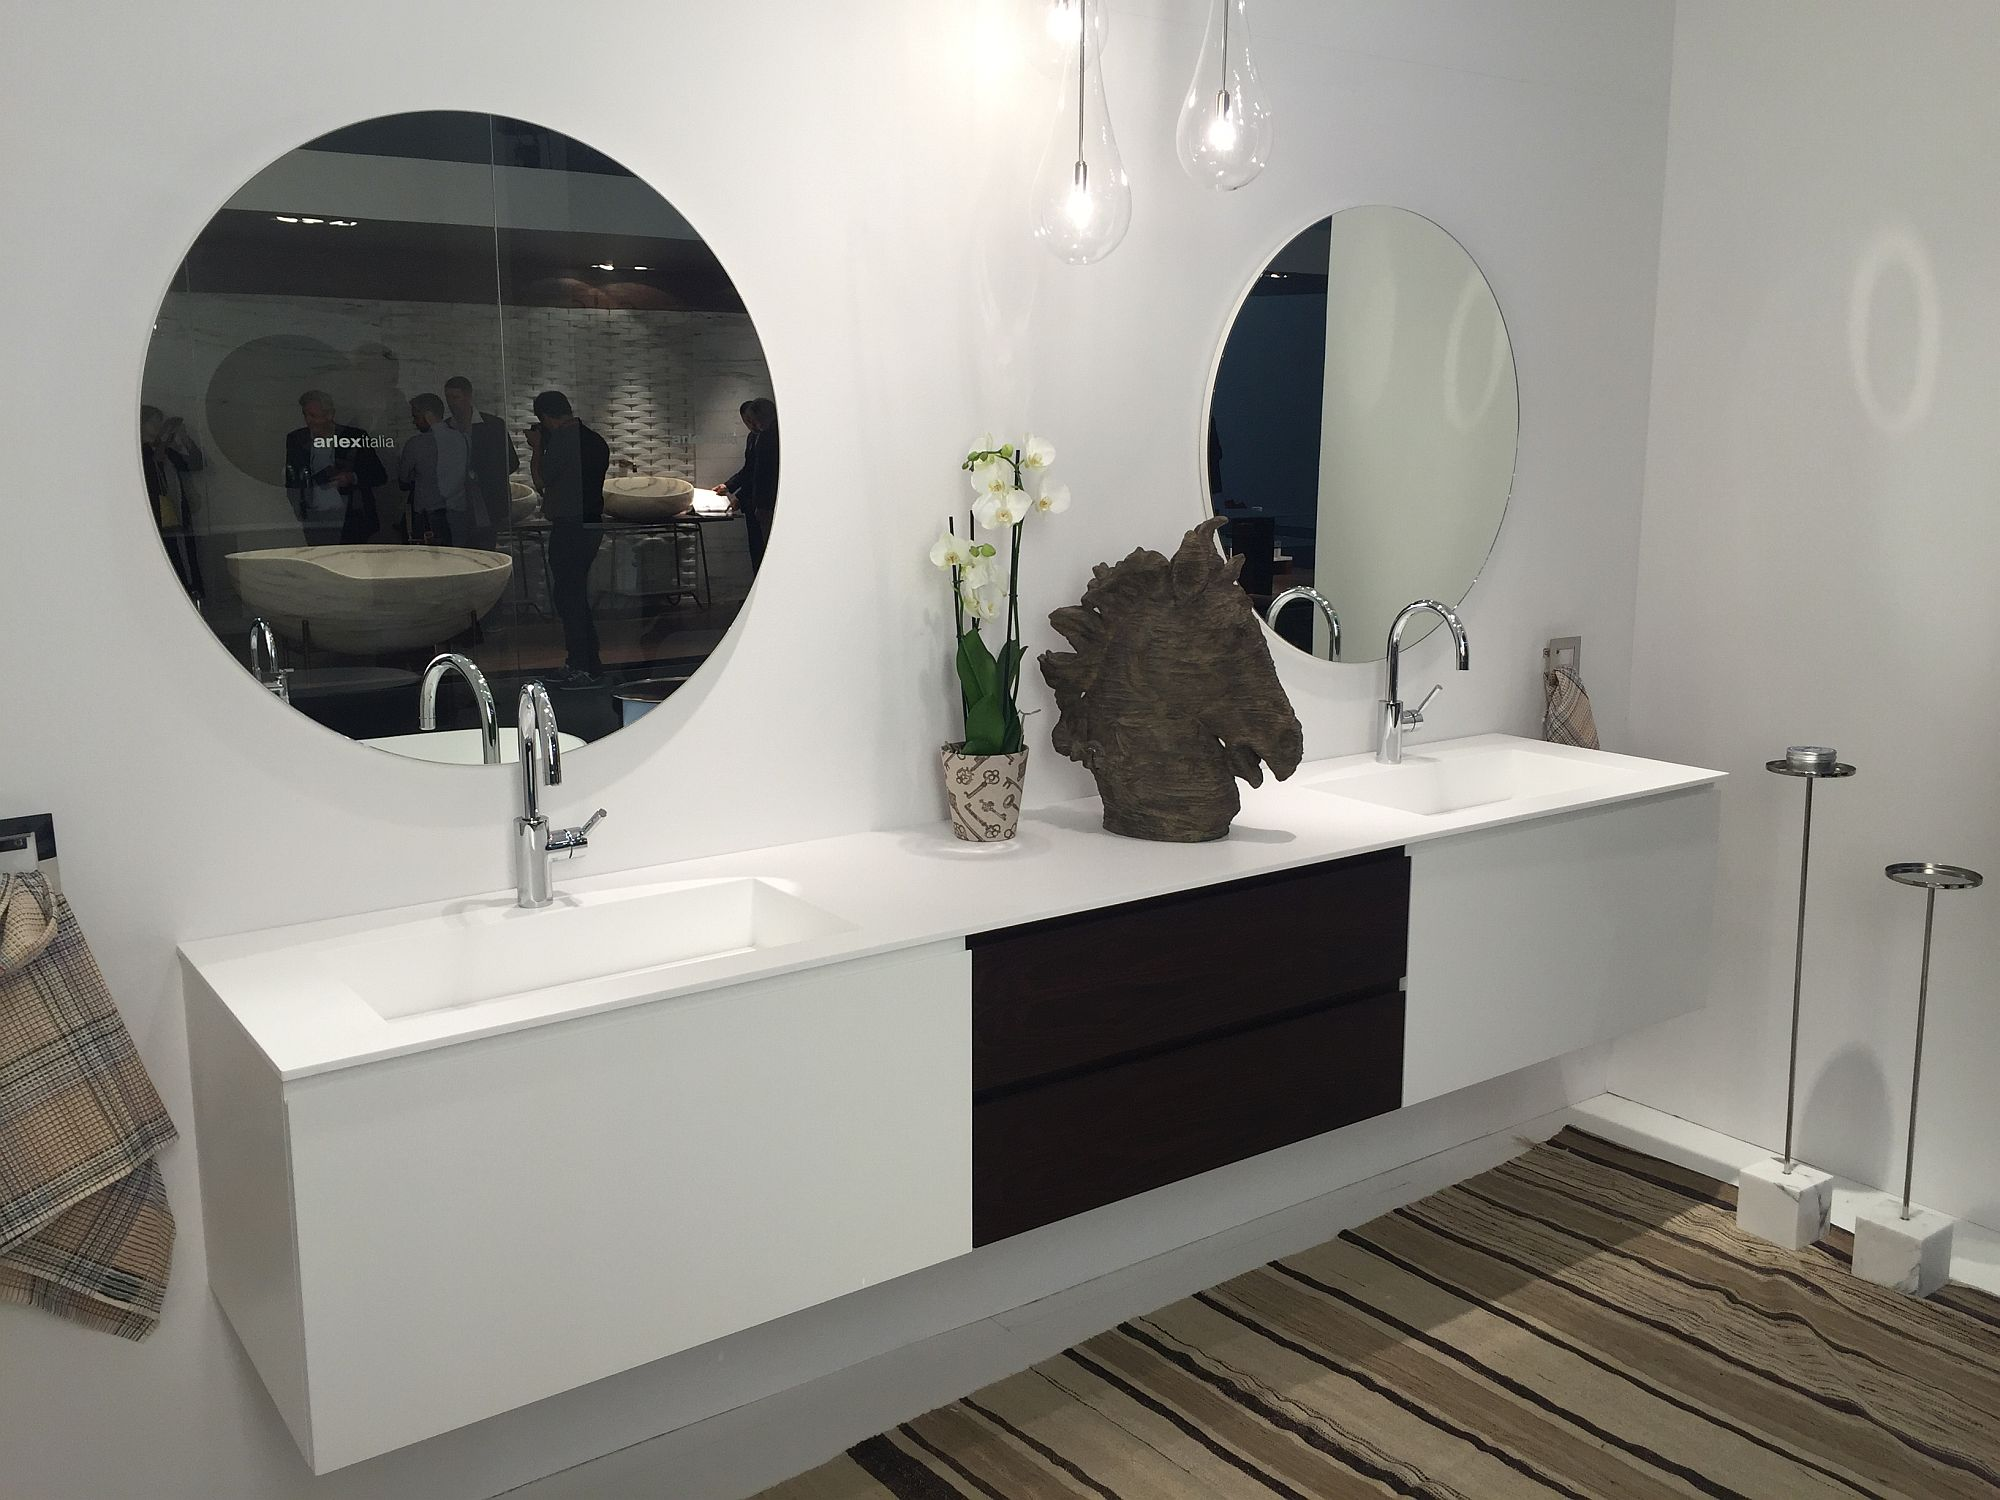 Contemporary bathroom vanity in white with a small vase and flowers that bring color to the setting